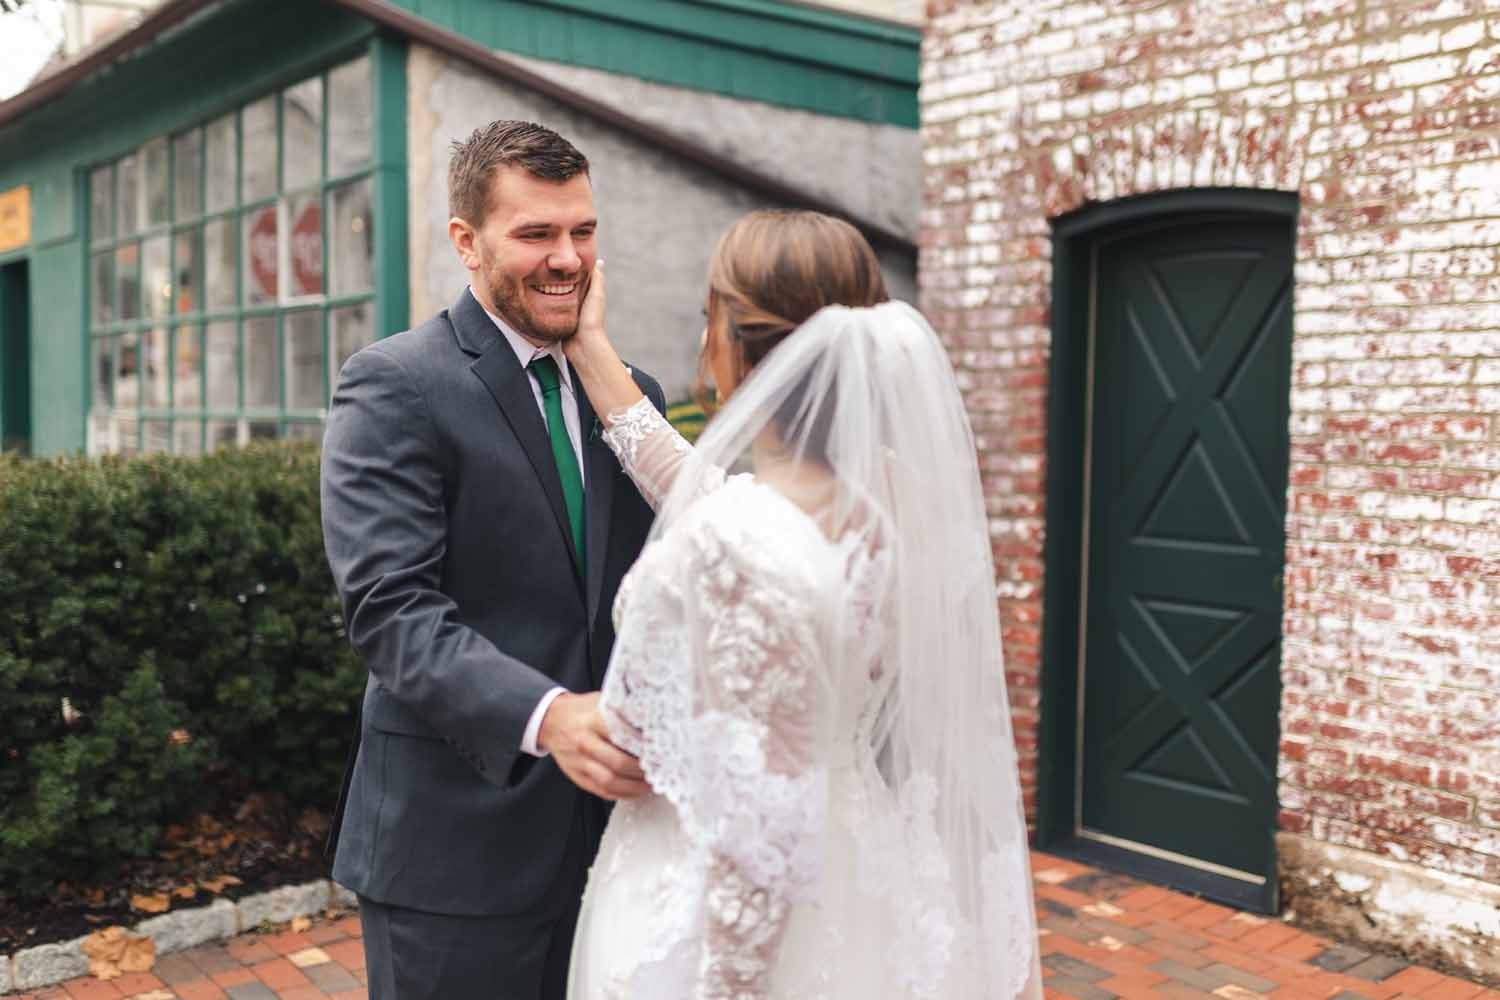 Bride places hand on grooms cheek during first look